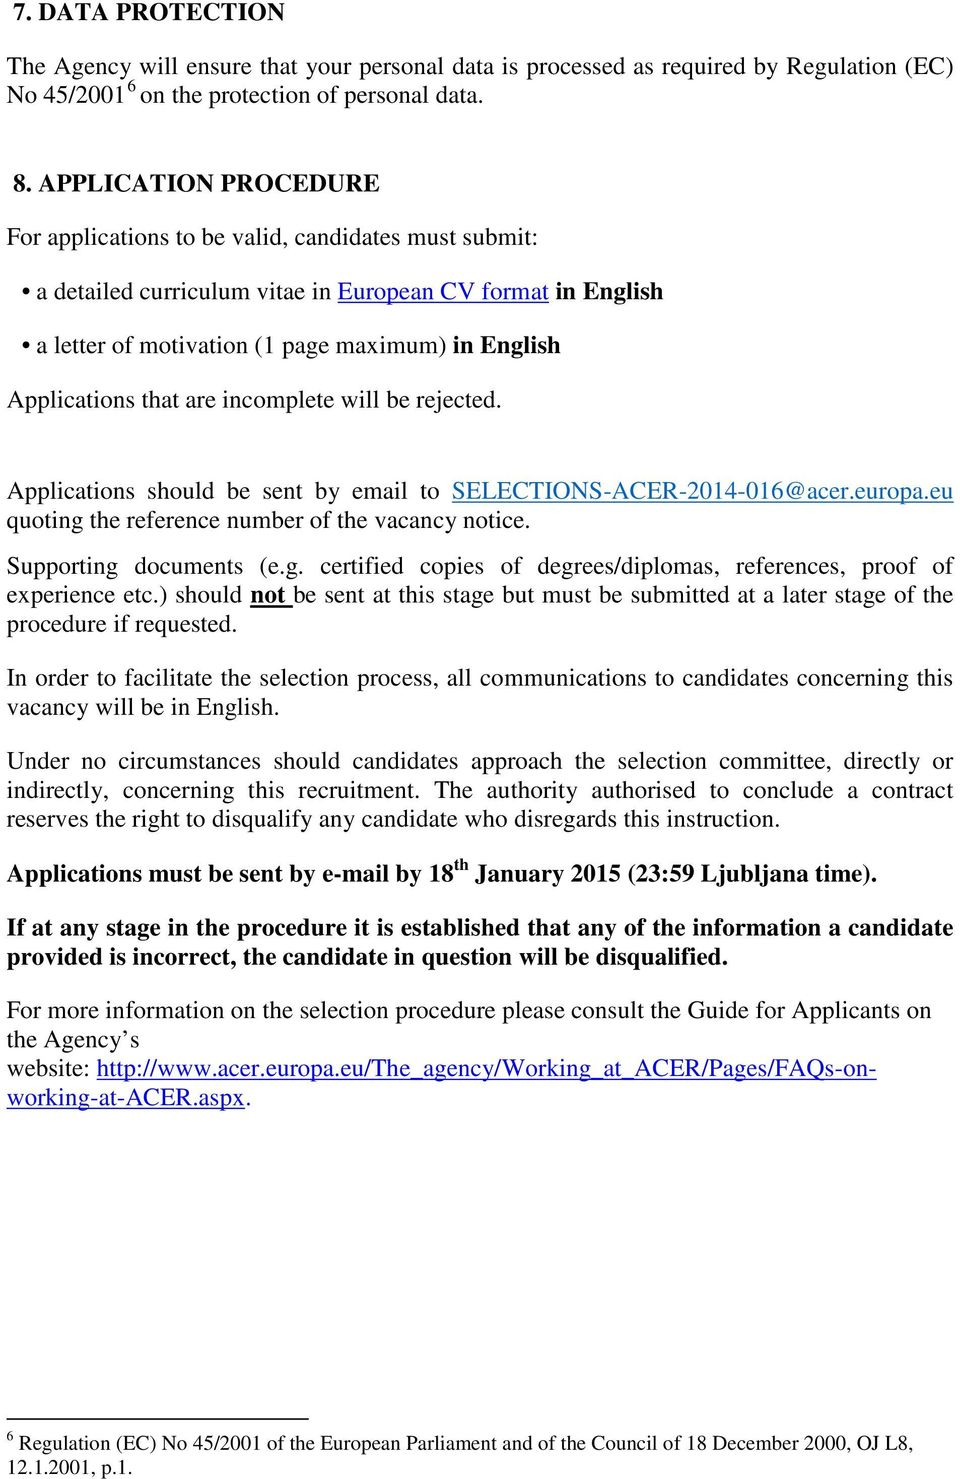 Applications that are incomplete will be rejected. Applications should be sent by email to SELECTIONS-ACER-2014-016@acer.europa.eu quoting the reference number of the vacancy notice.